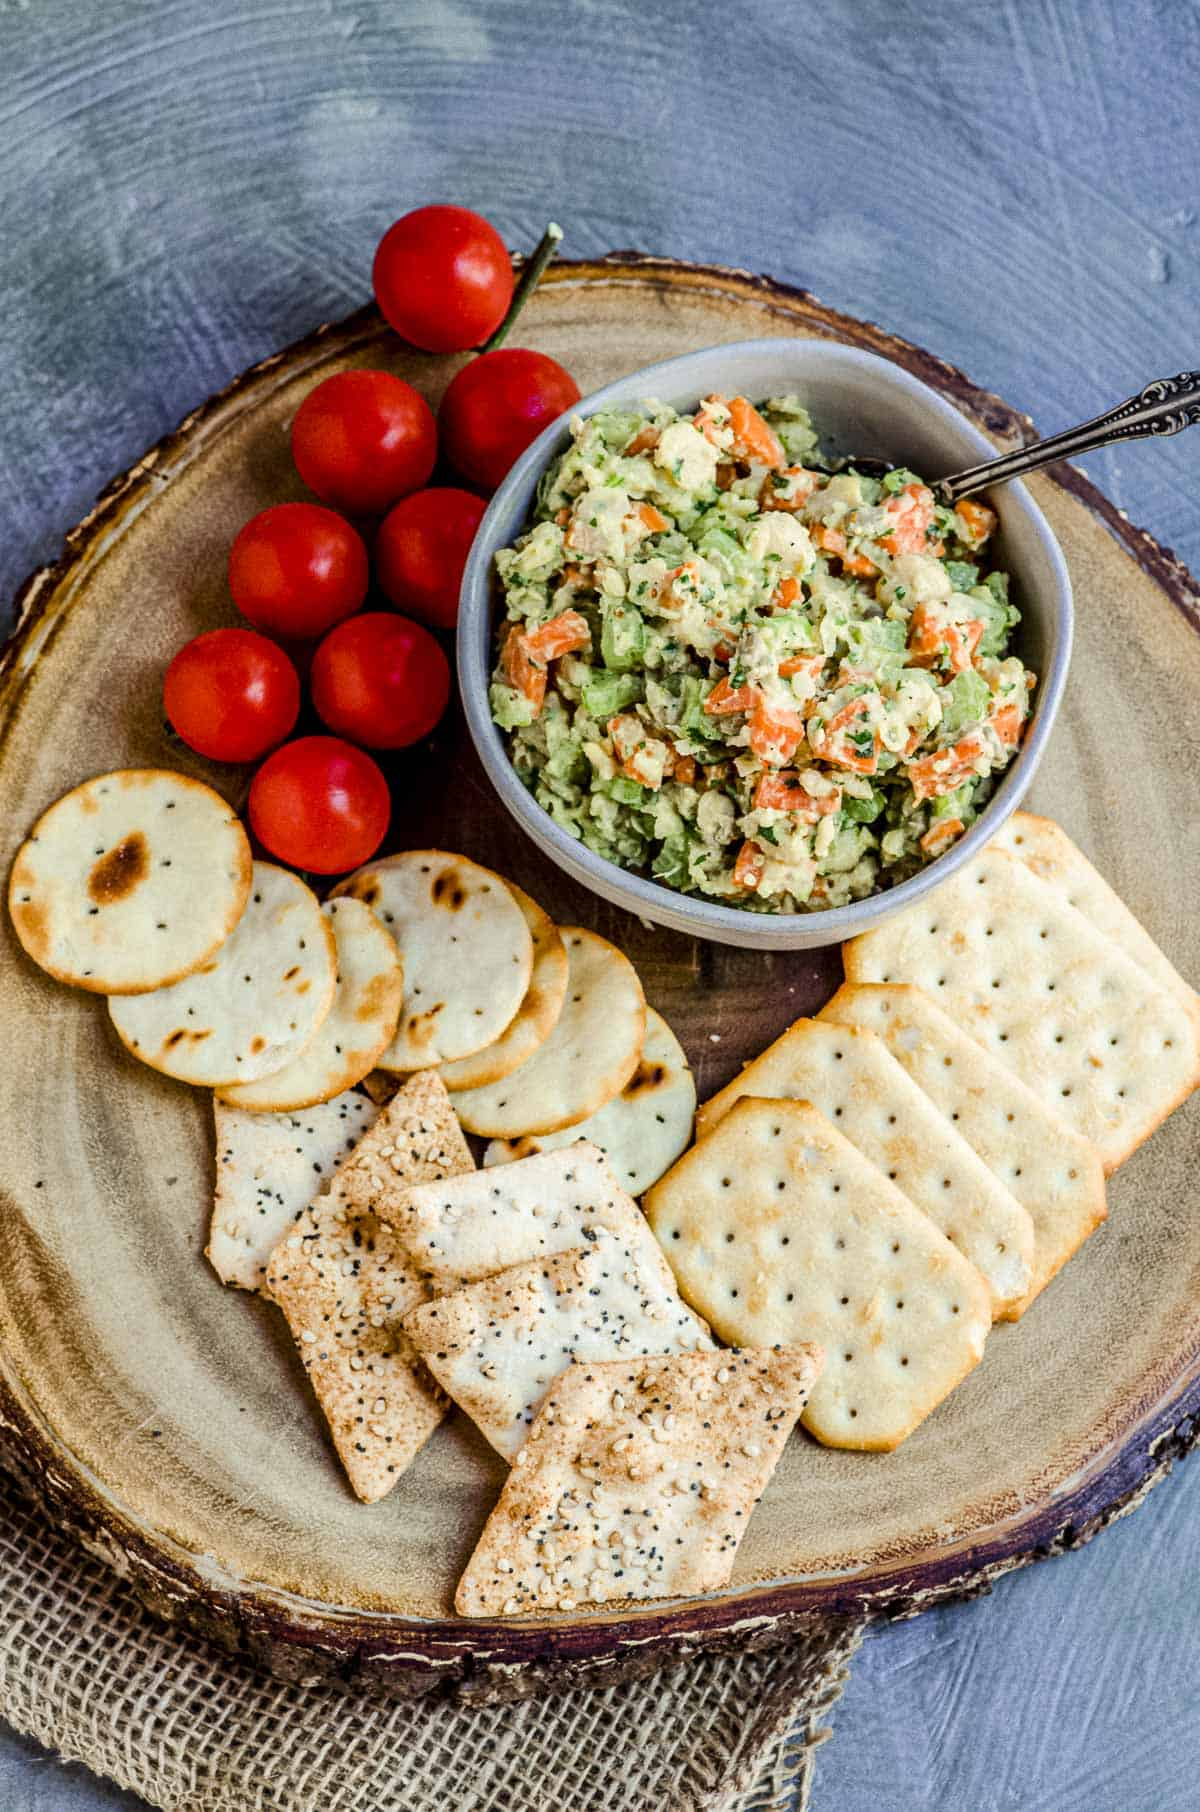 Close up view of a bowl with chickpea salad on a wood board with assorted crackers and fresh cherry tomatoes